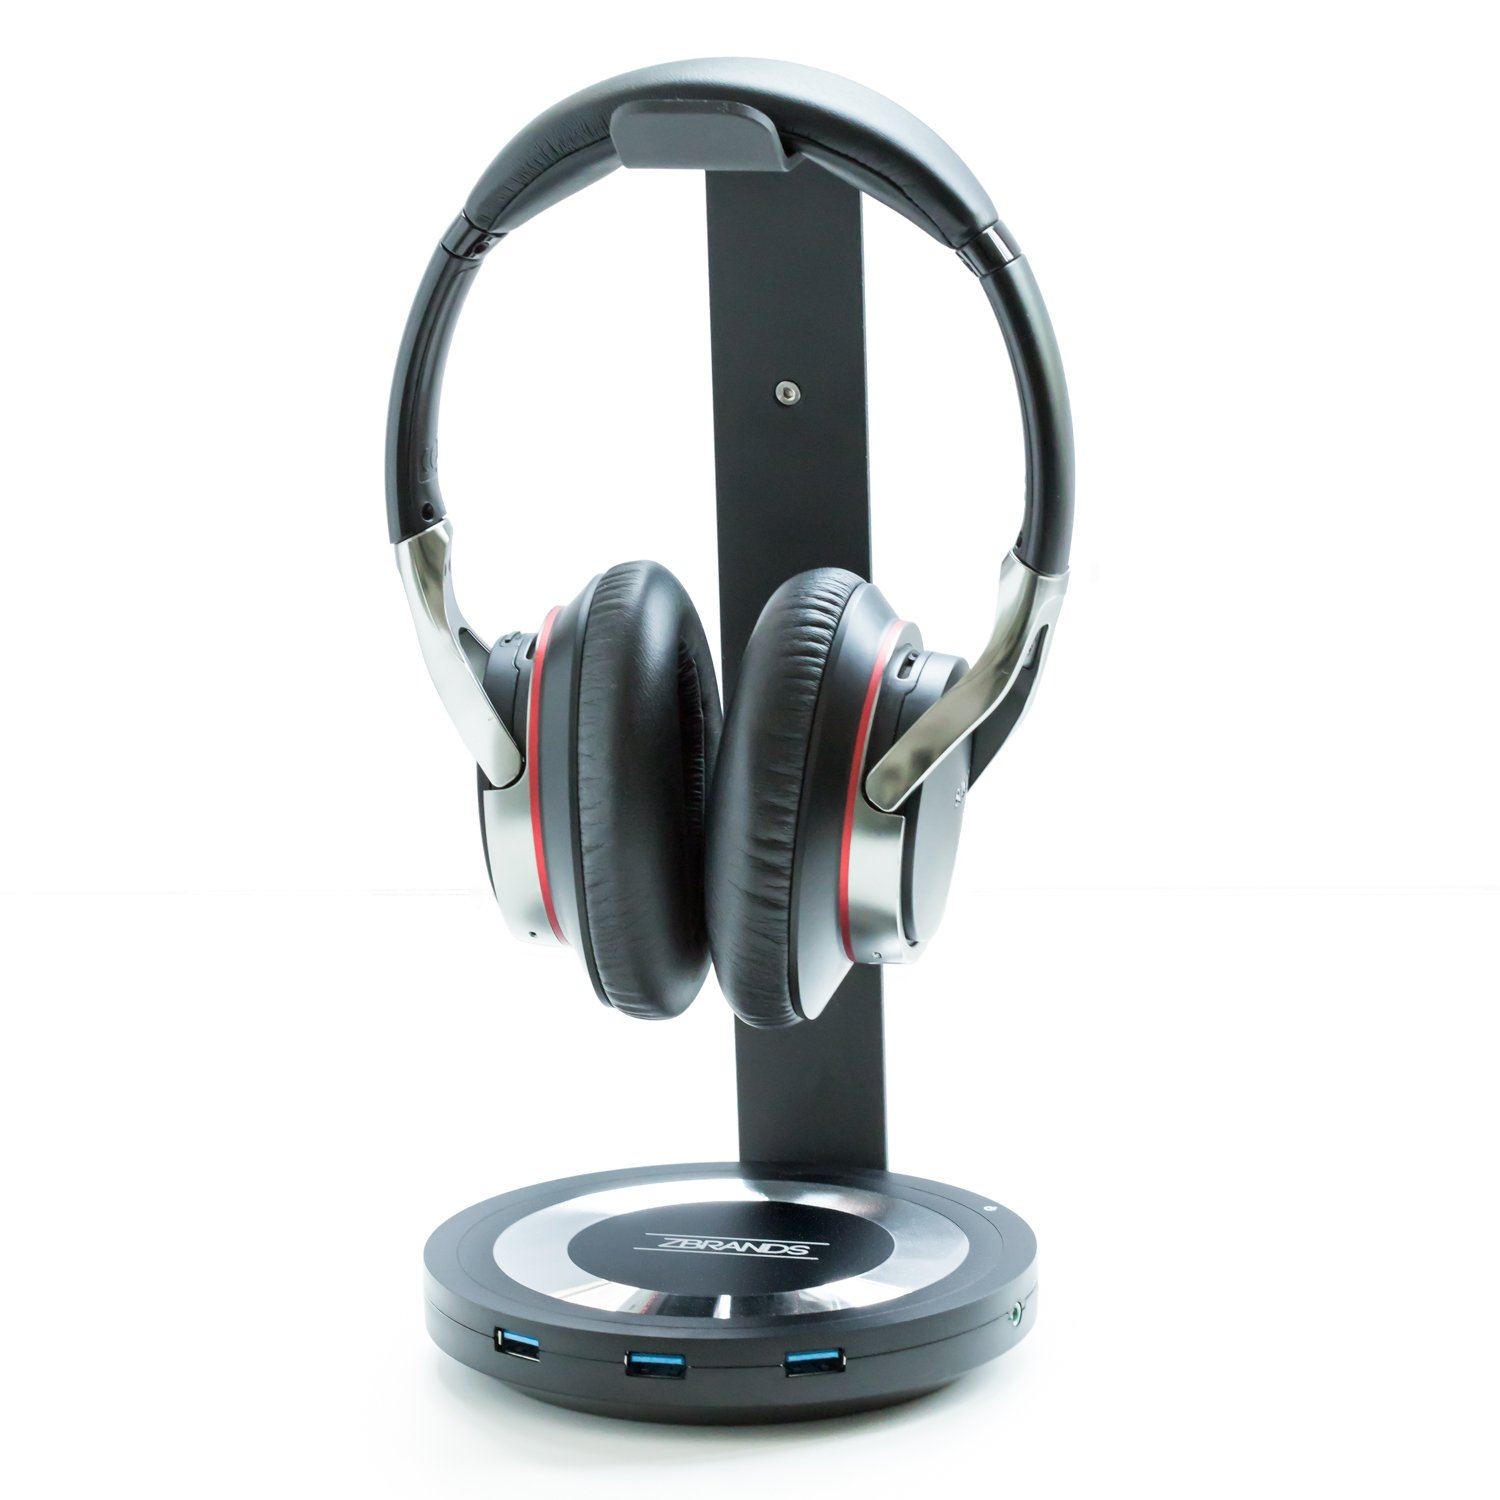 ZBRANDS Premium Headphone Charging Stand